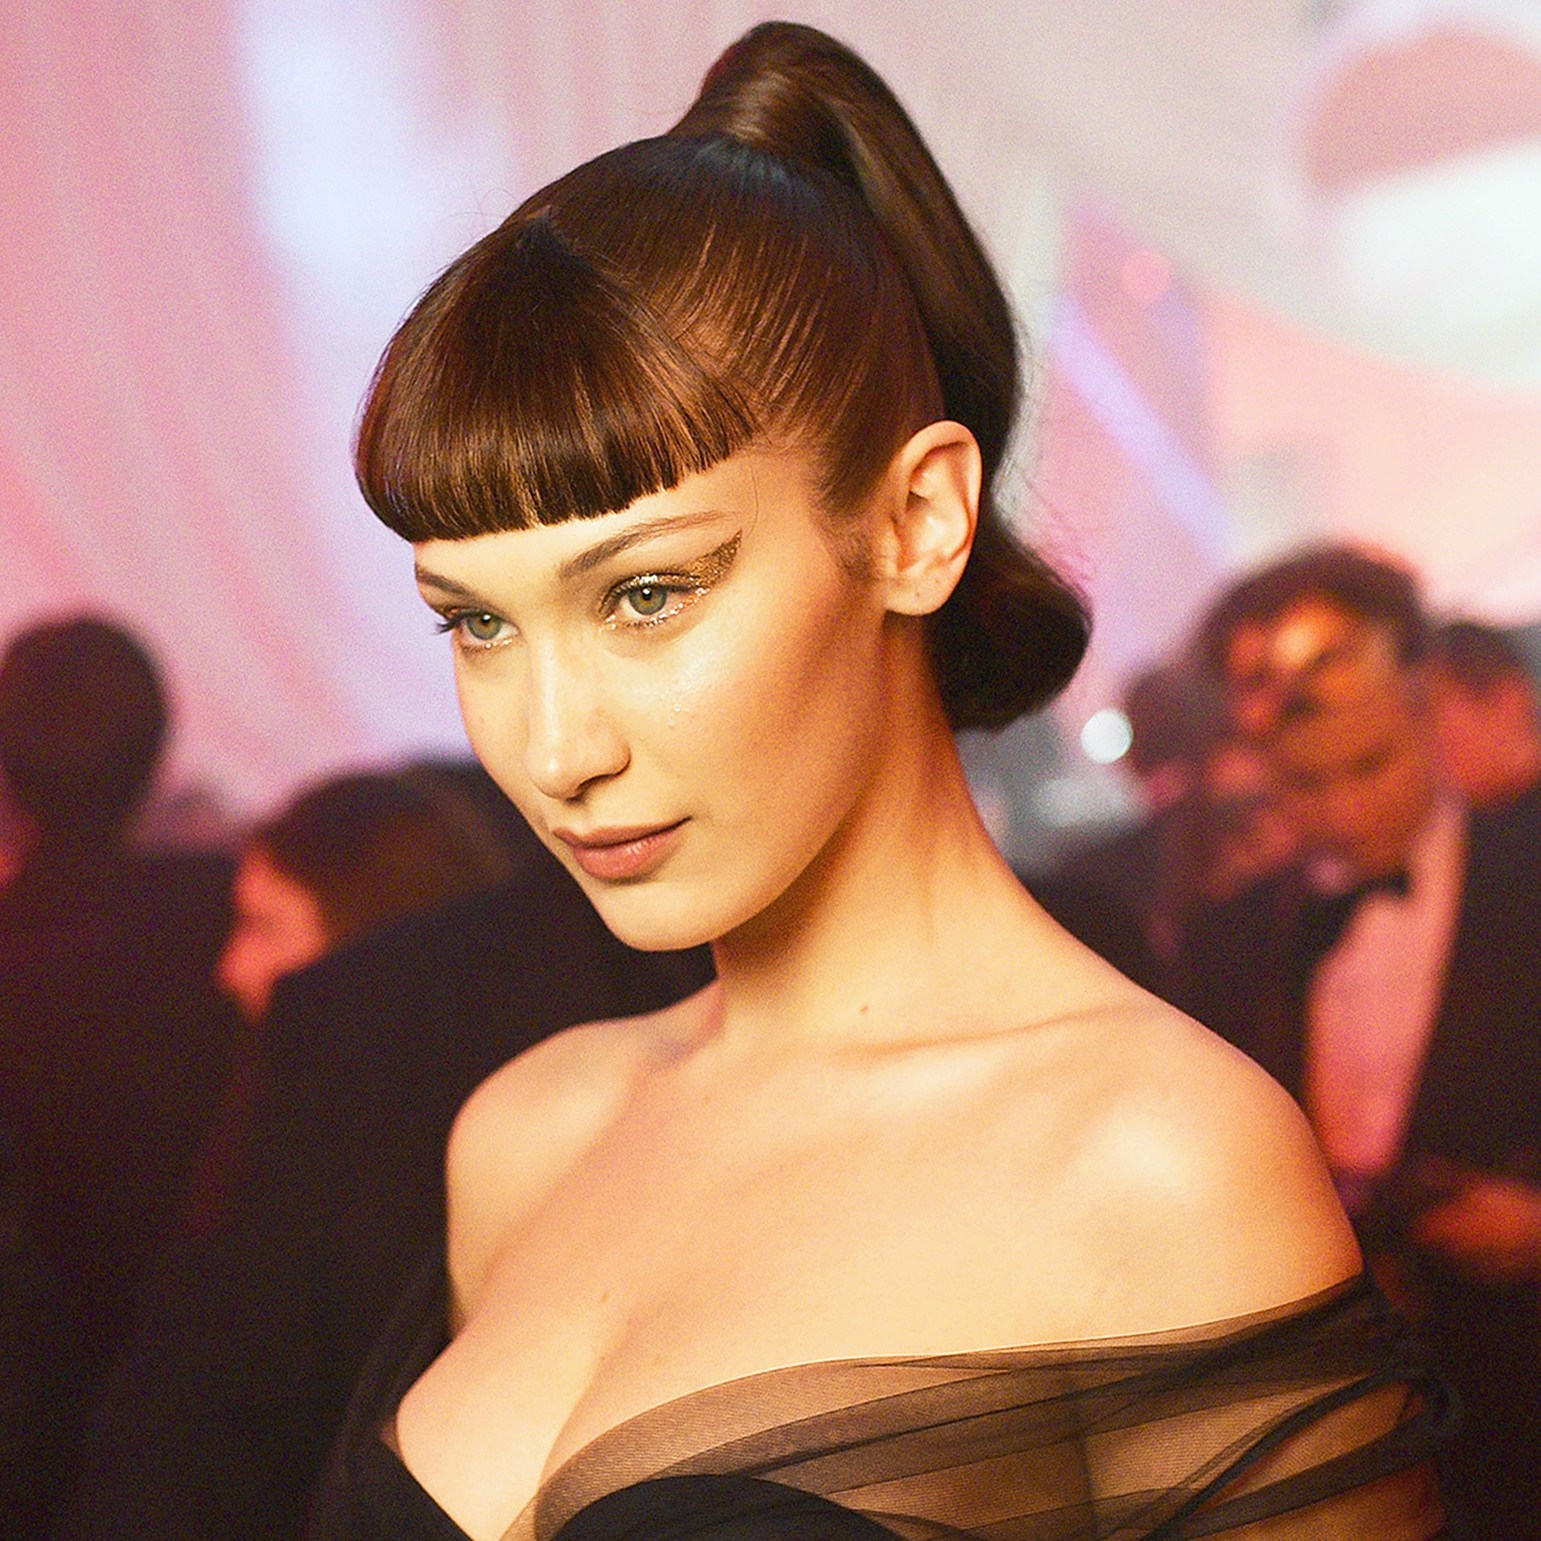 Bella Hadid attends Le Bal Surrealiste Dior during Haute Couture Spring Summer 2018 show as part of Paris Fashion Week in Paris, France.